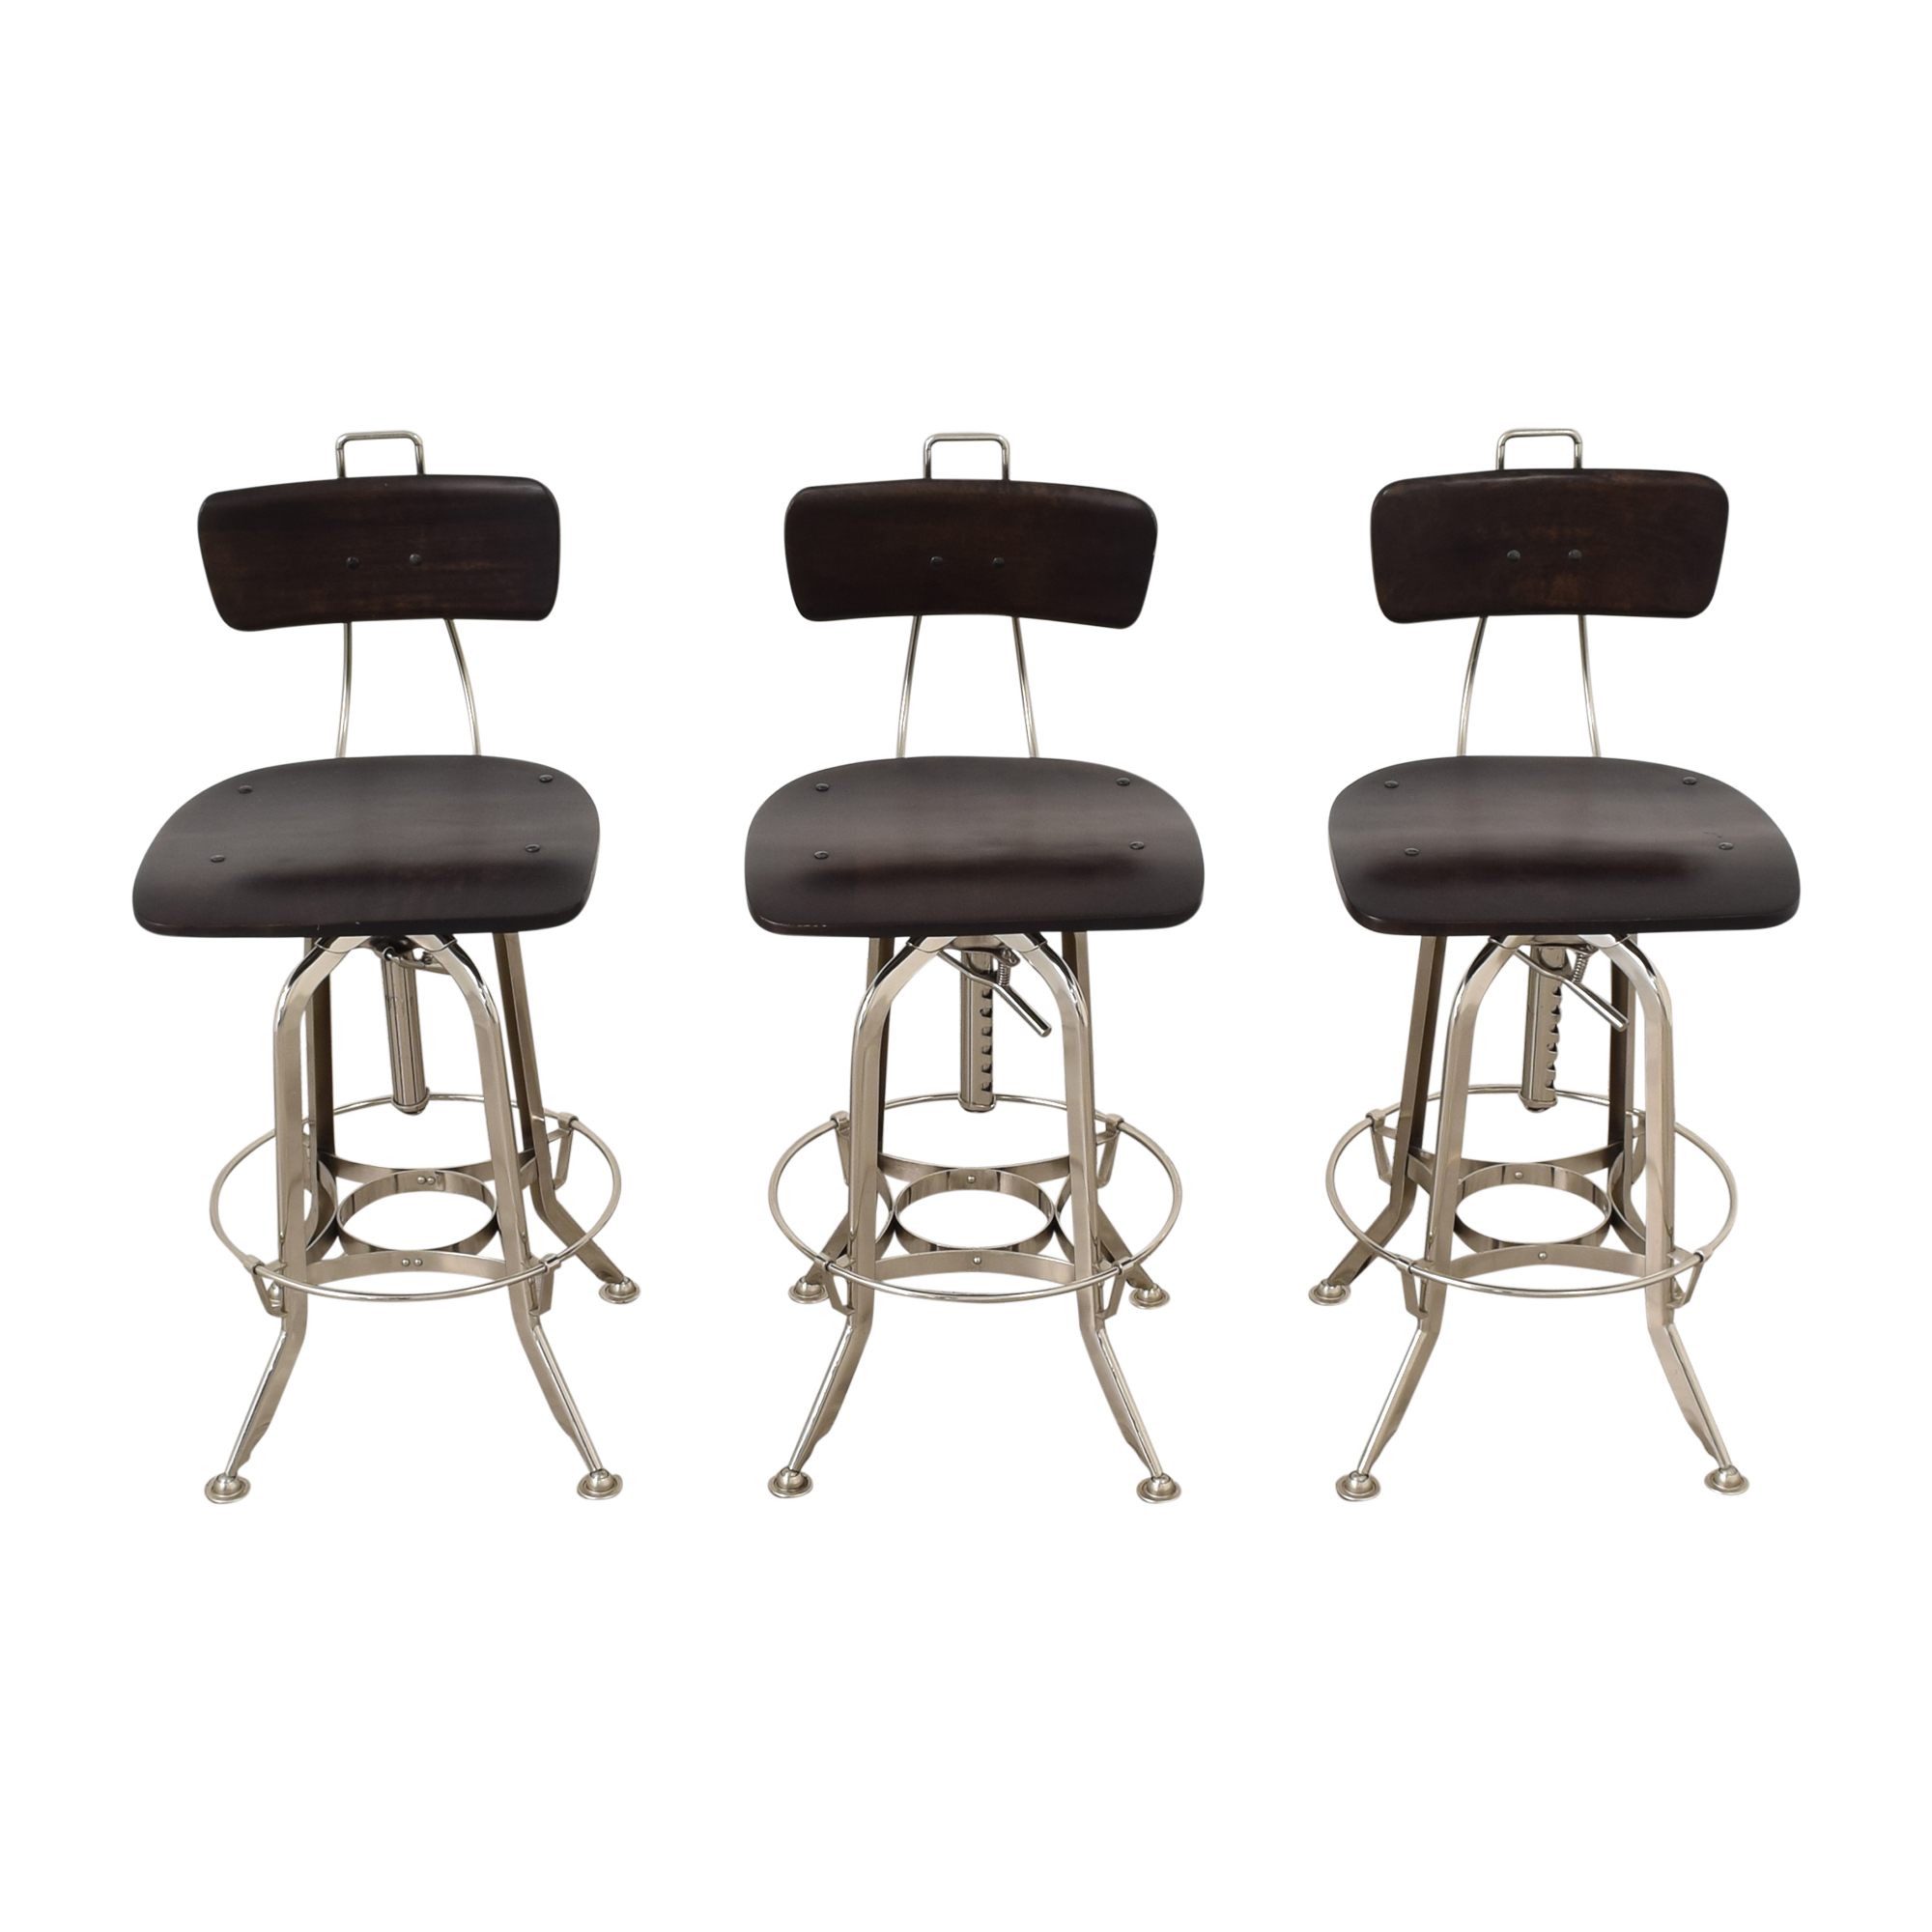 Restoration Hardware 1940s Vintage Toledo Bar Chairs Restoration Hardware